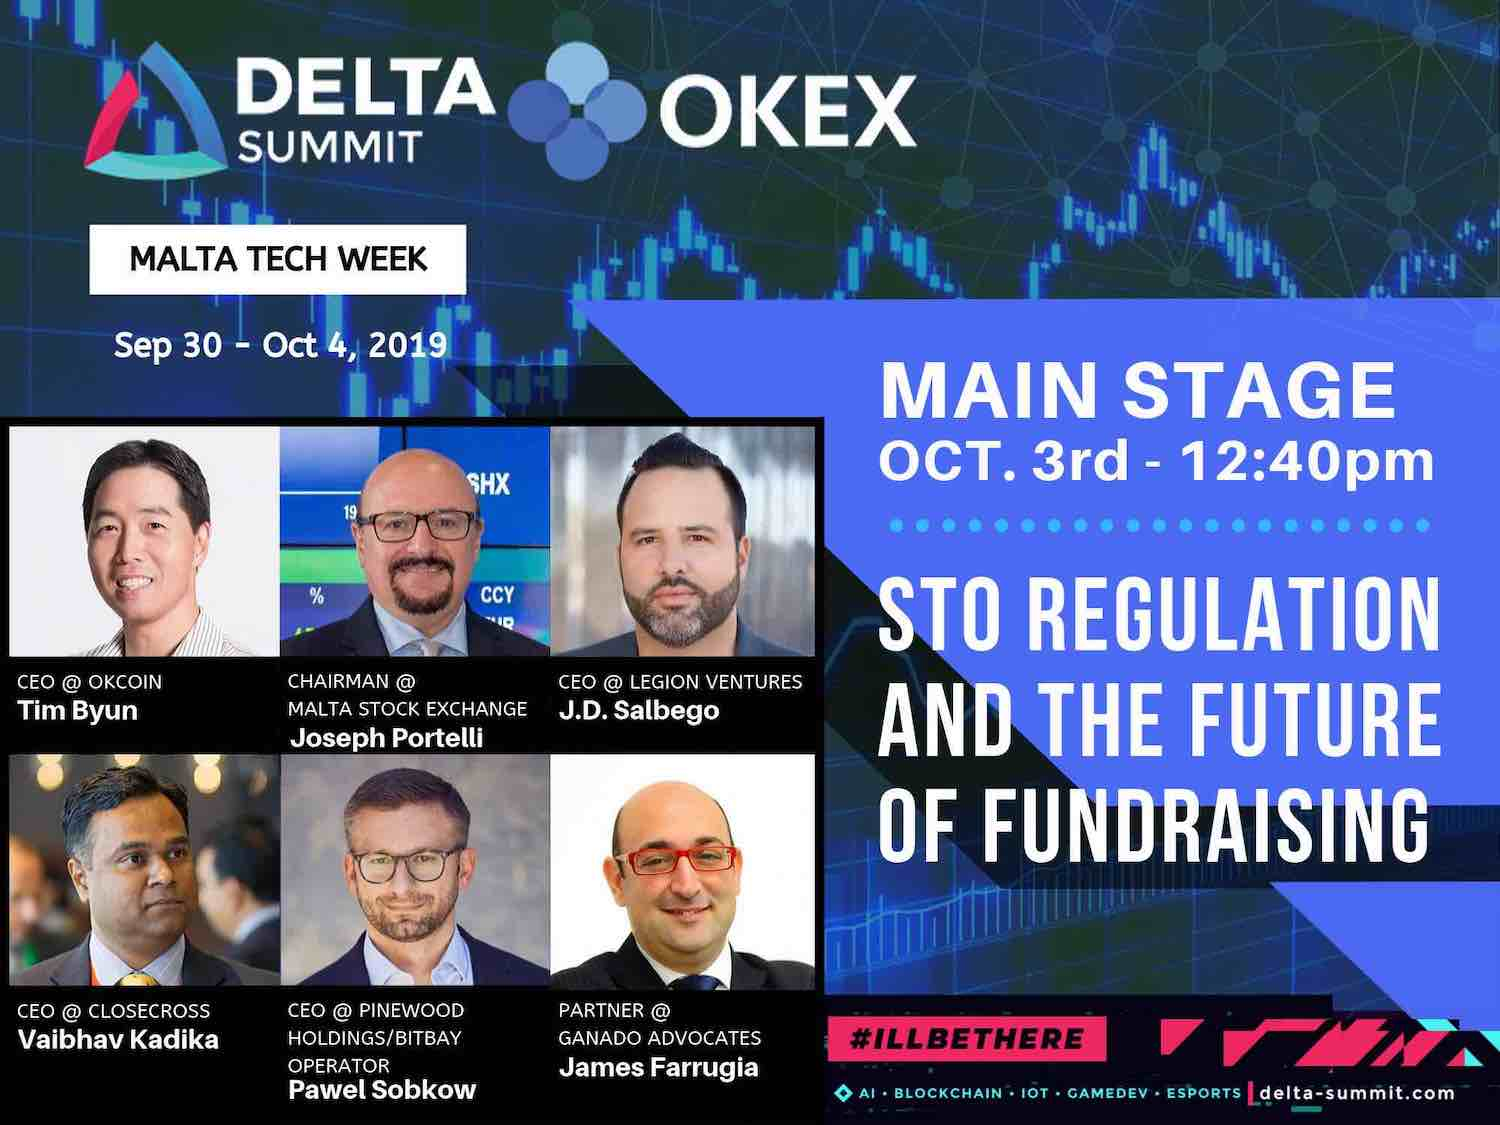 J.D. Salbego speaks main stage at Delta Summit 2019 during OKEx Malta Tech Week on STO regulation and future of fundraising with Joseph Portelli Chairman Malta Stock Exchange and Tim Byun CEO OKCoin